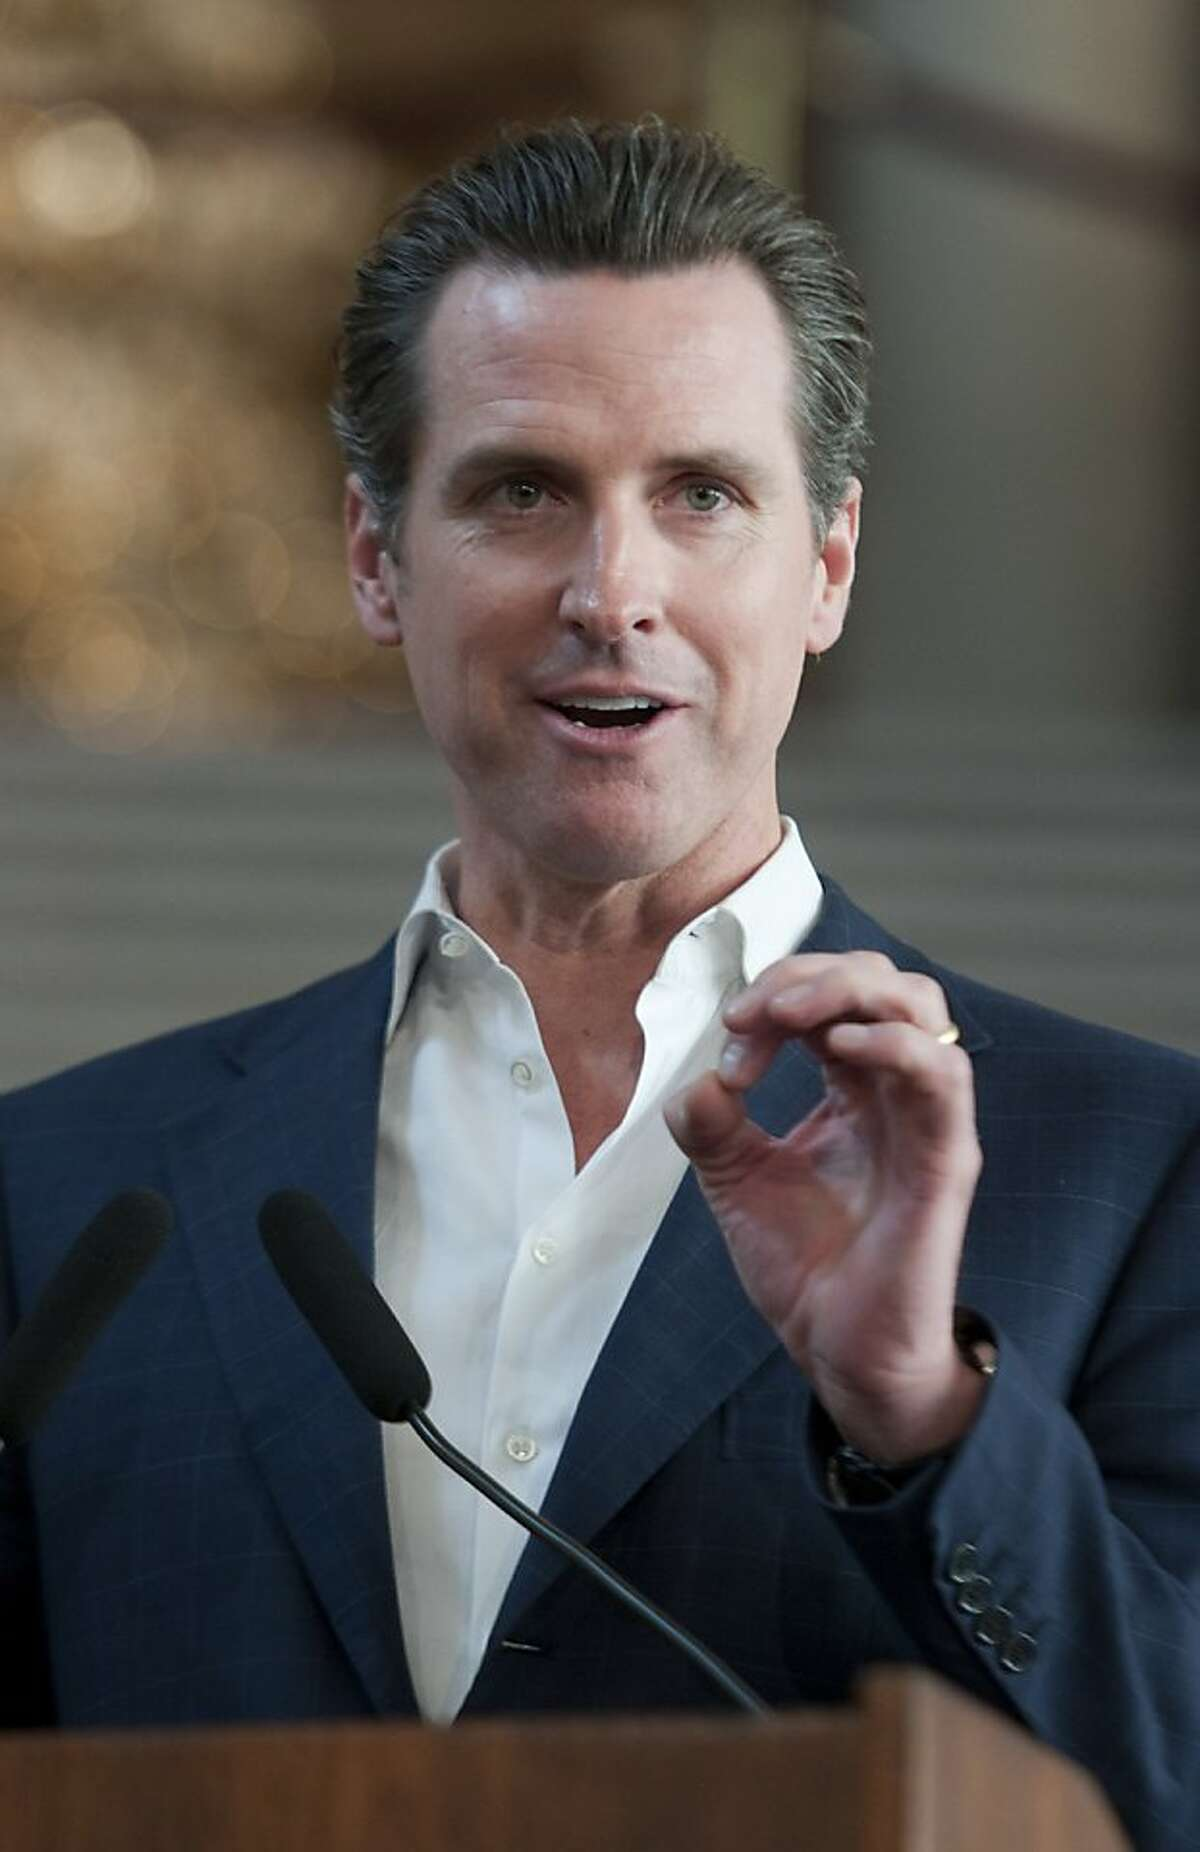 San Francisco Mayor Gavin Newsom announces the start of the World Series champion Commissioner's Trophy Tour on Wednesday, Dec. 15, 2010, at San Francisco City Hall. The tour will begin on Jan. 4, 2011. (Adam Lau/Special to The Chronicle)